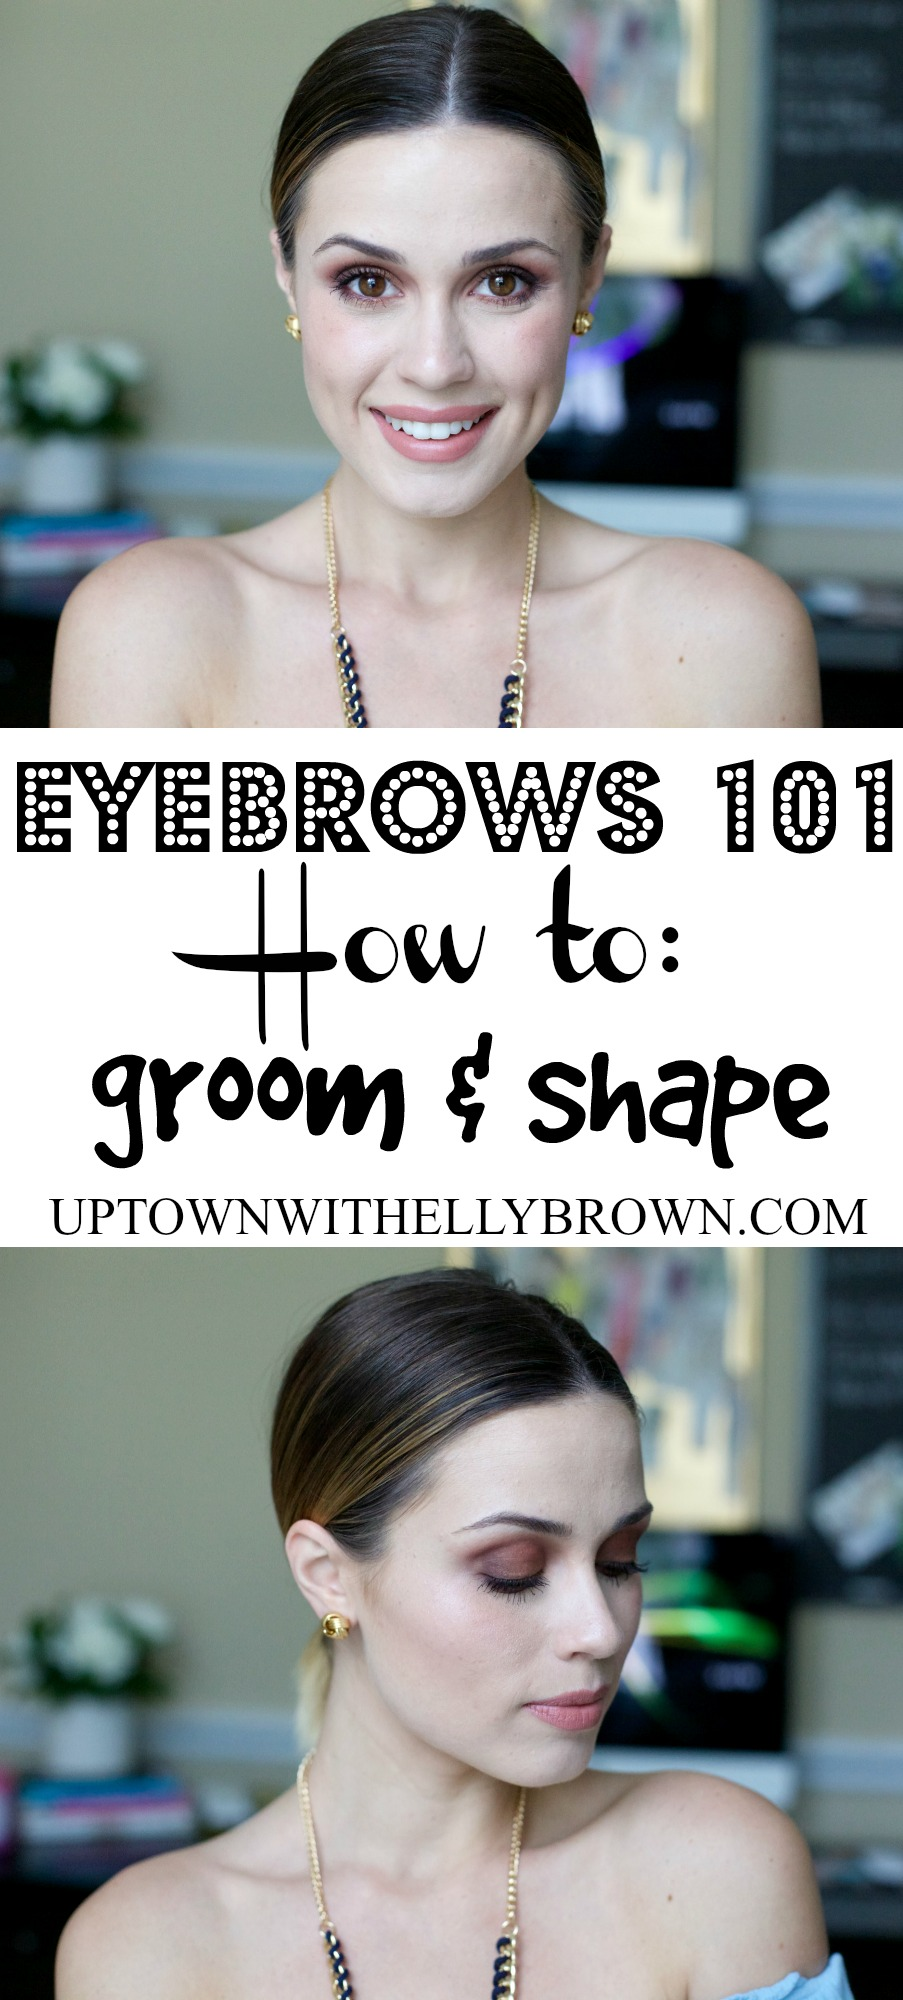 Houston Beauty Blogger Uptown With Elly Brown shares how she grooms and shapes her eyebrows in an easy to follow eyebrow tutorial video!